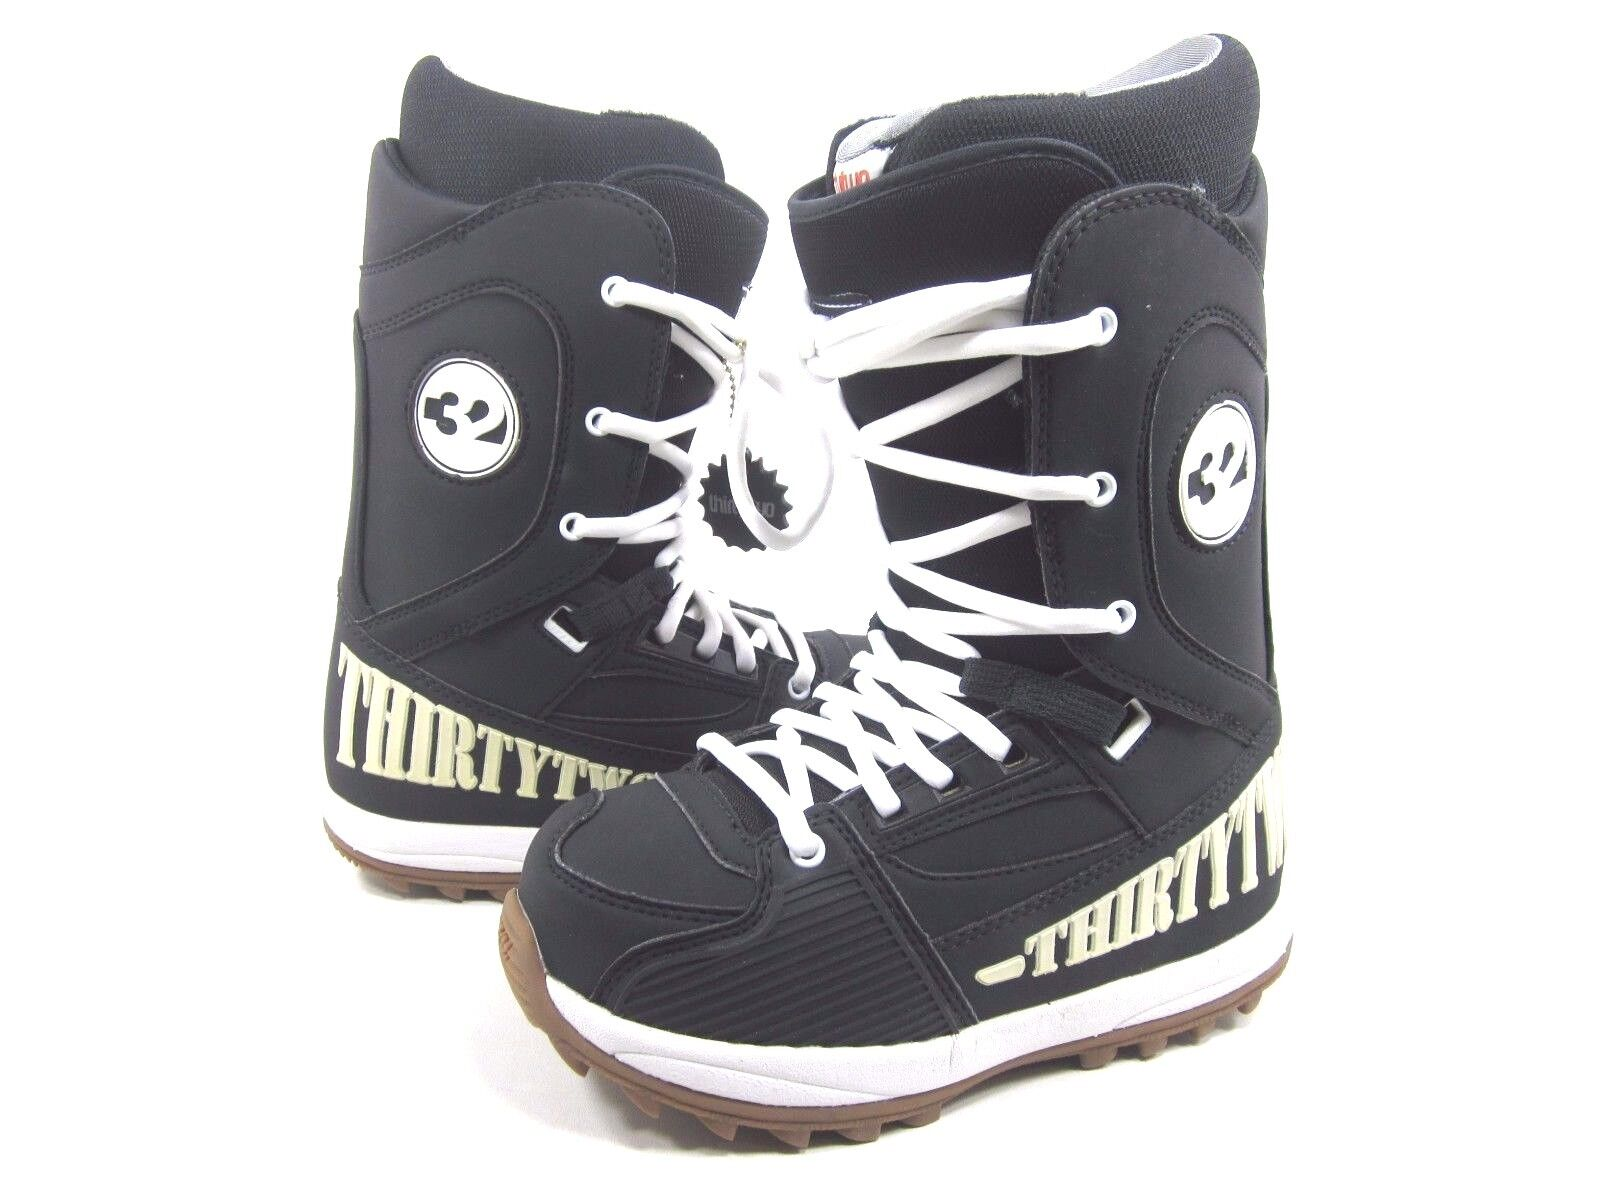 THIRTY TWO MEN'S HERITAGE SNOWBOARDING BOOTS,BLACK WHITE GUM US SIZE 5,EUR 37